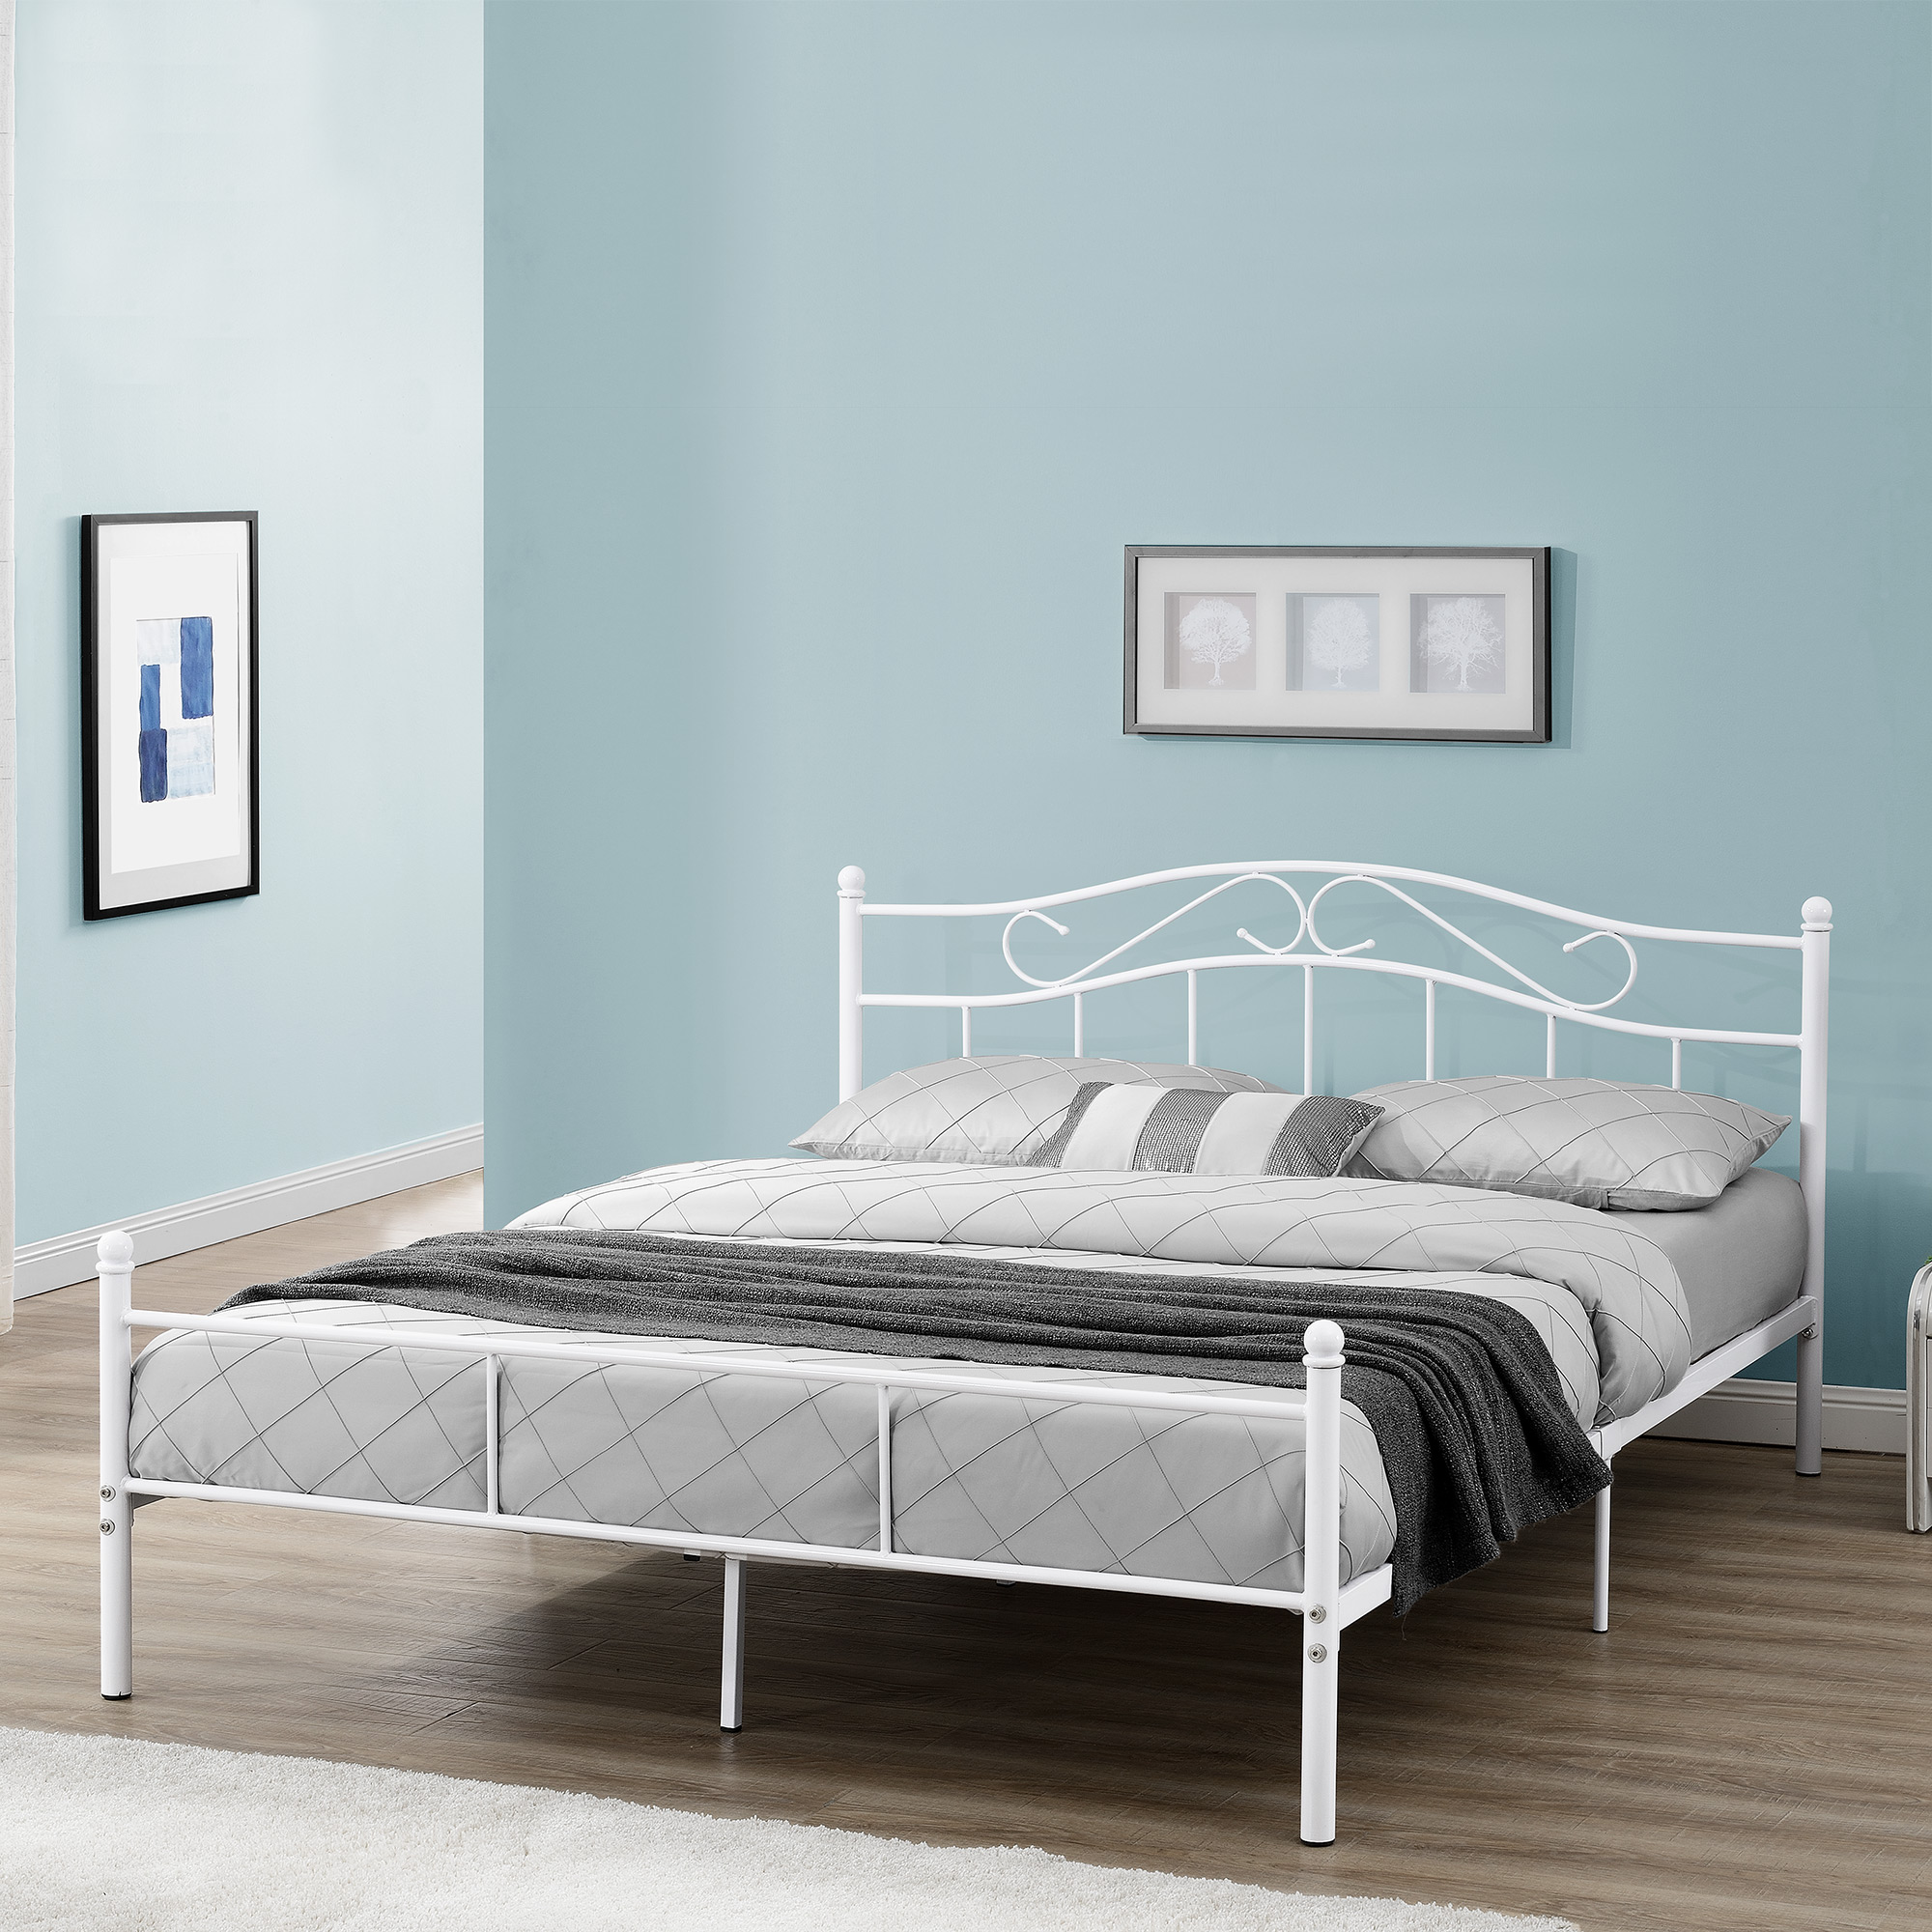 metallbett 140 160 180 200x200cm bett bettgestell doppelbett ehebett ebay. Black Bedroom Furniture Sets. Home Design Ideas